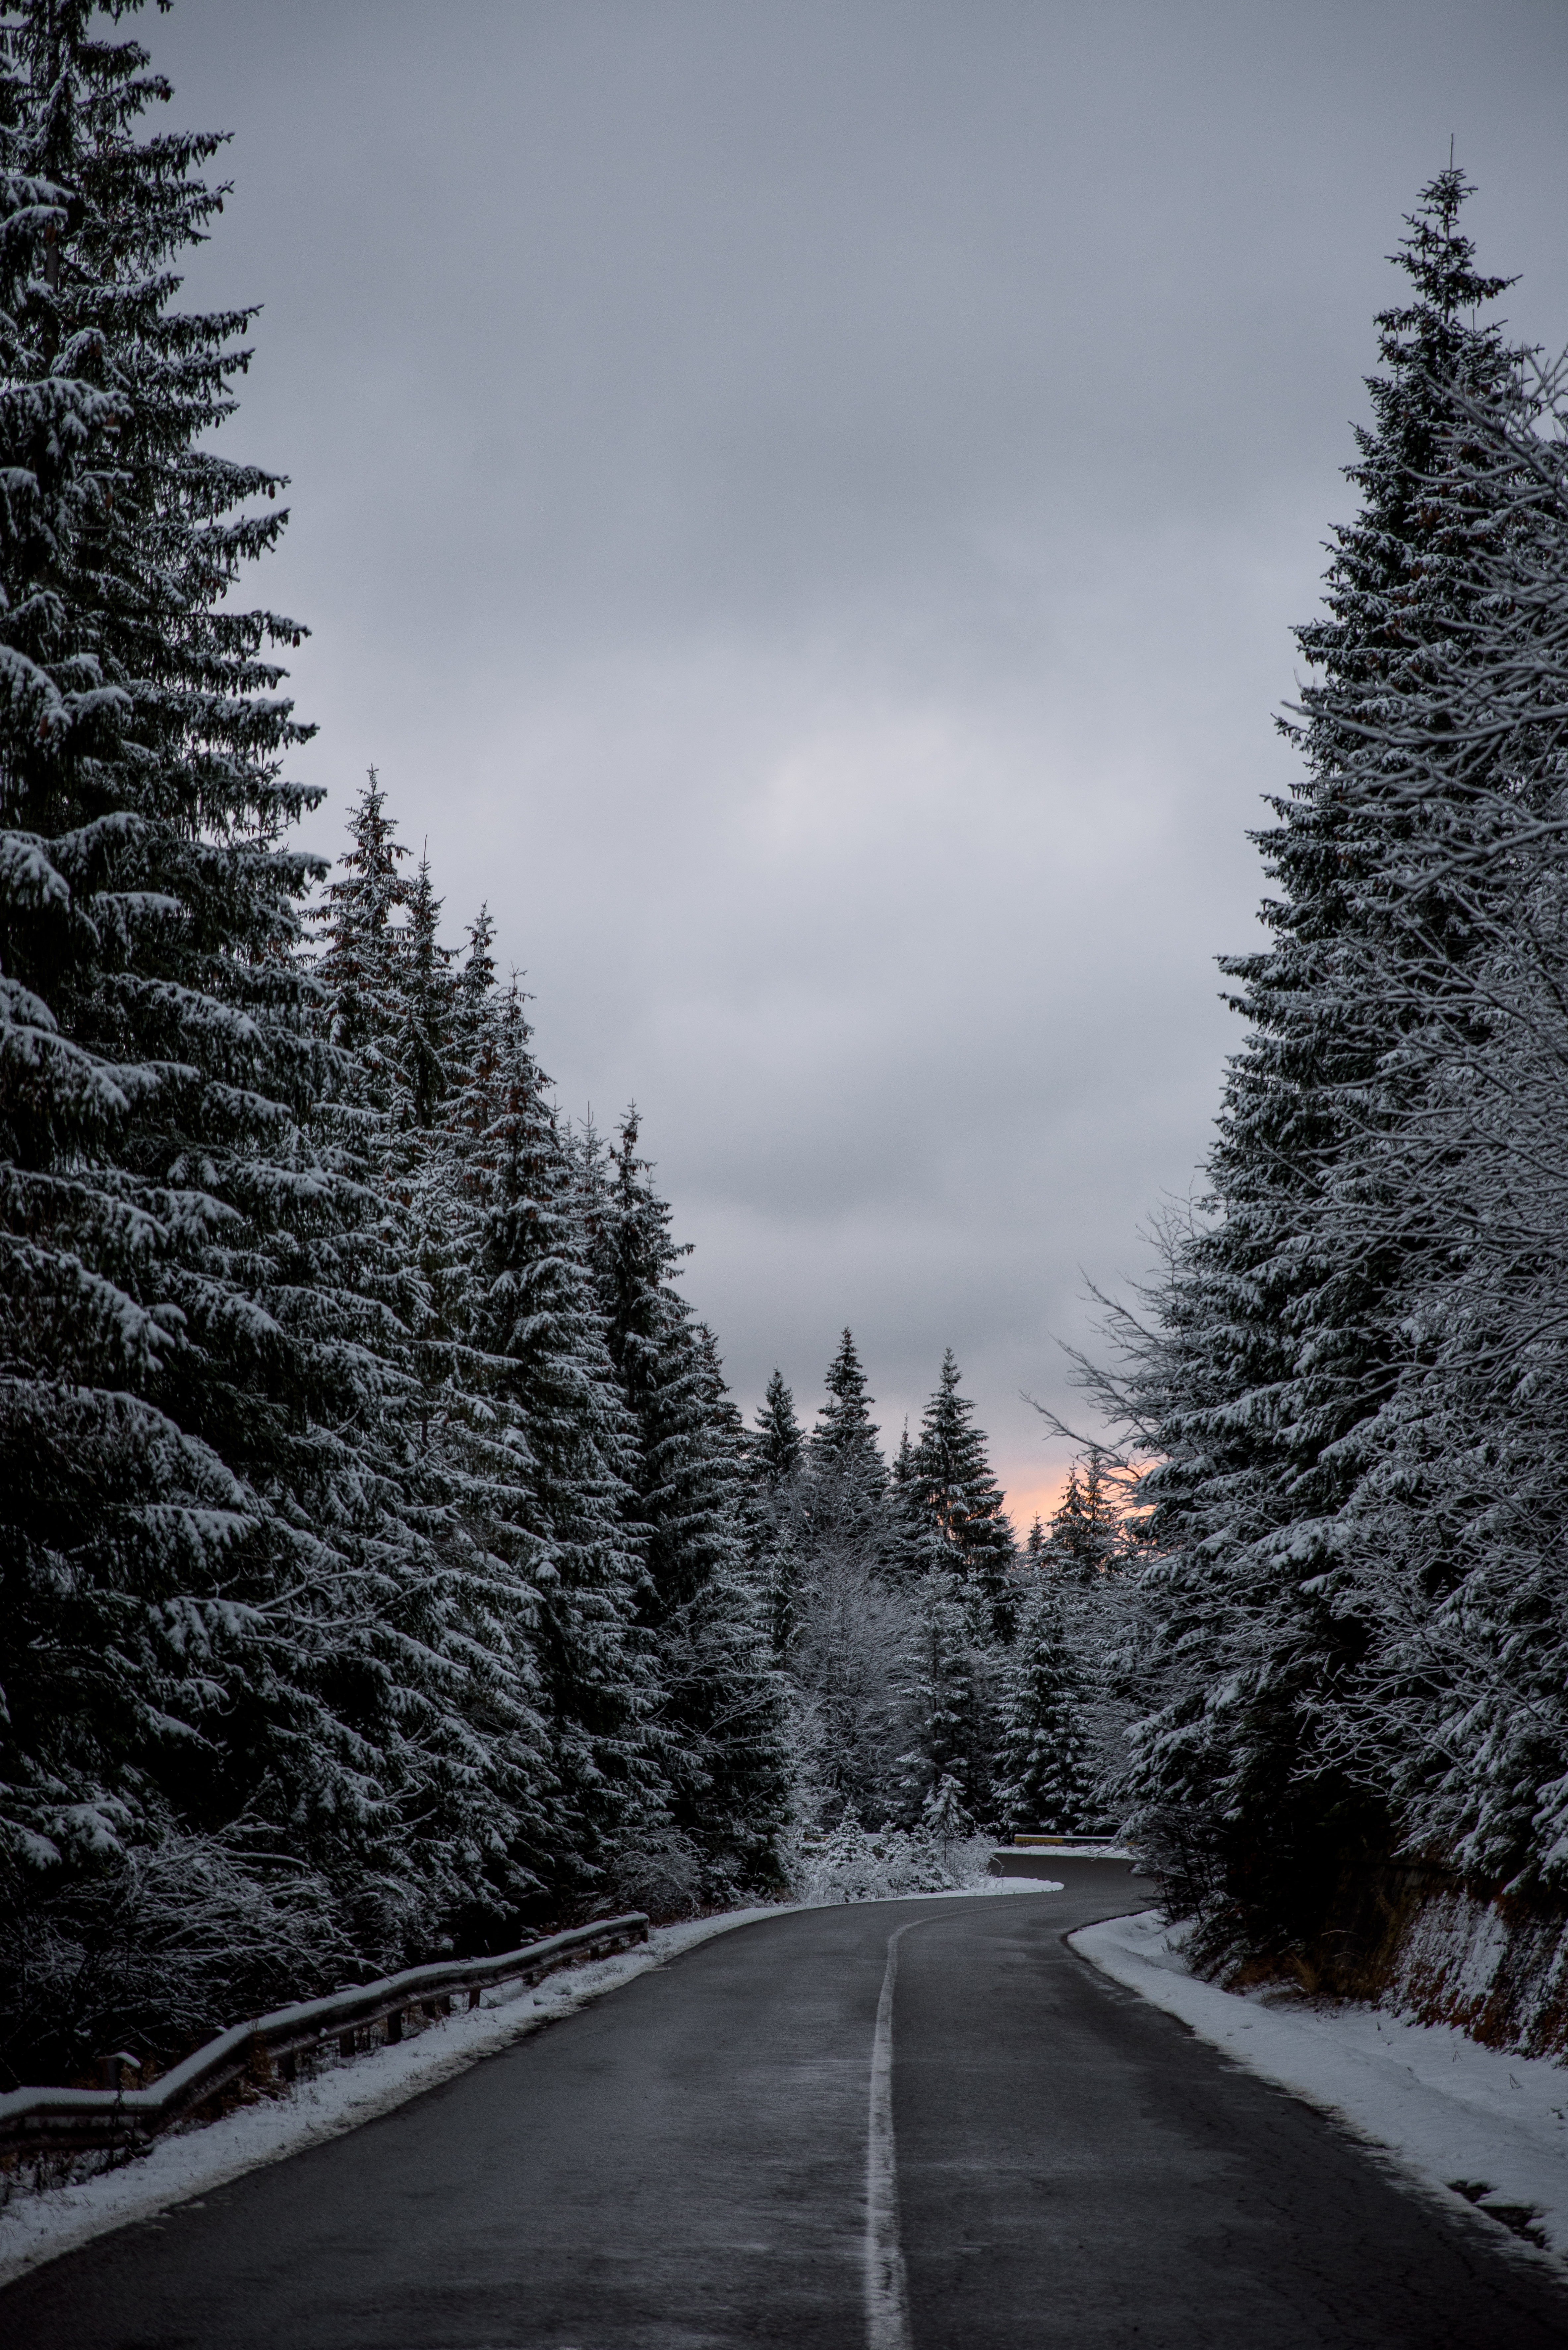 snow covered forest and road